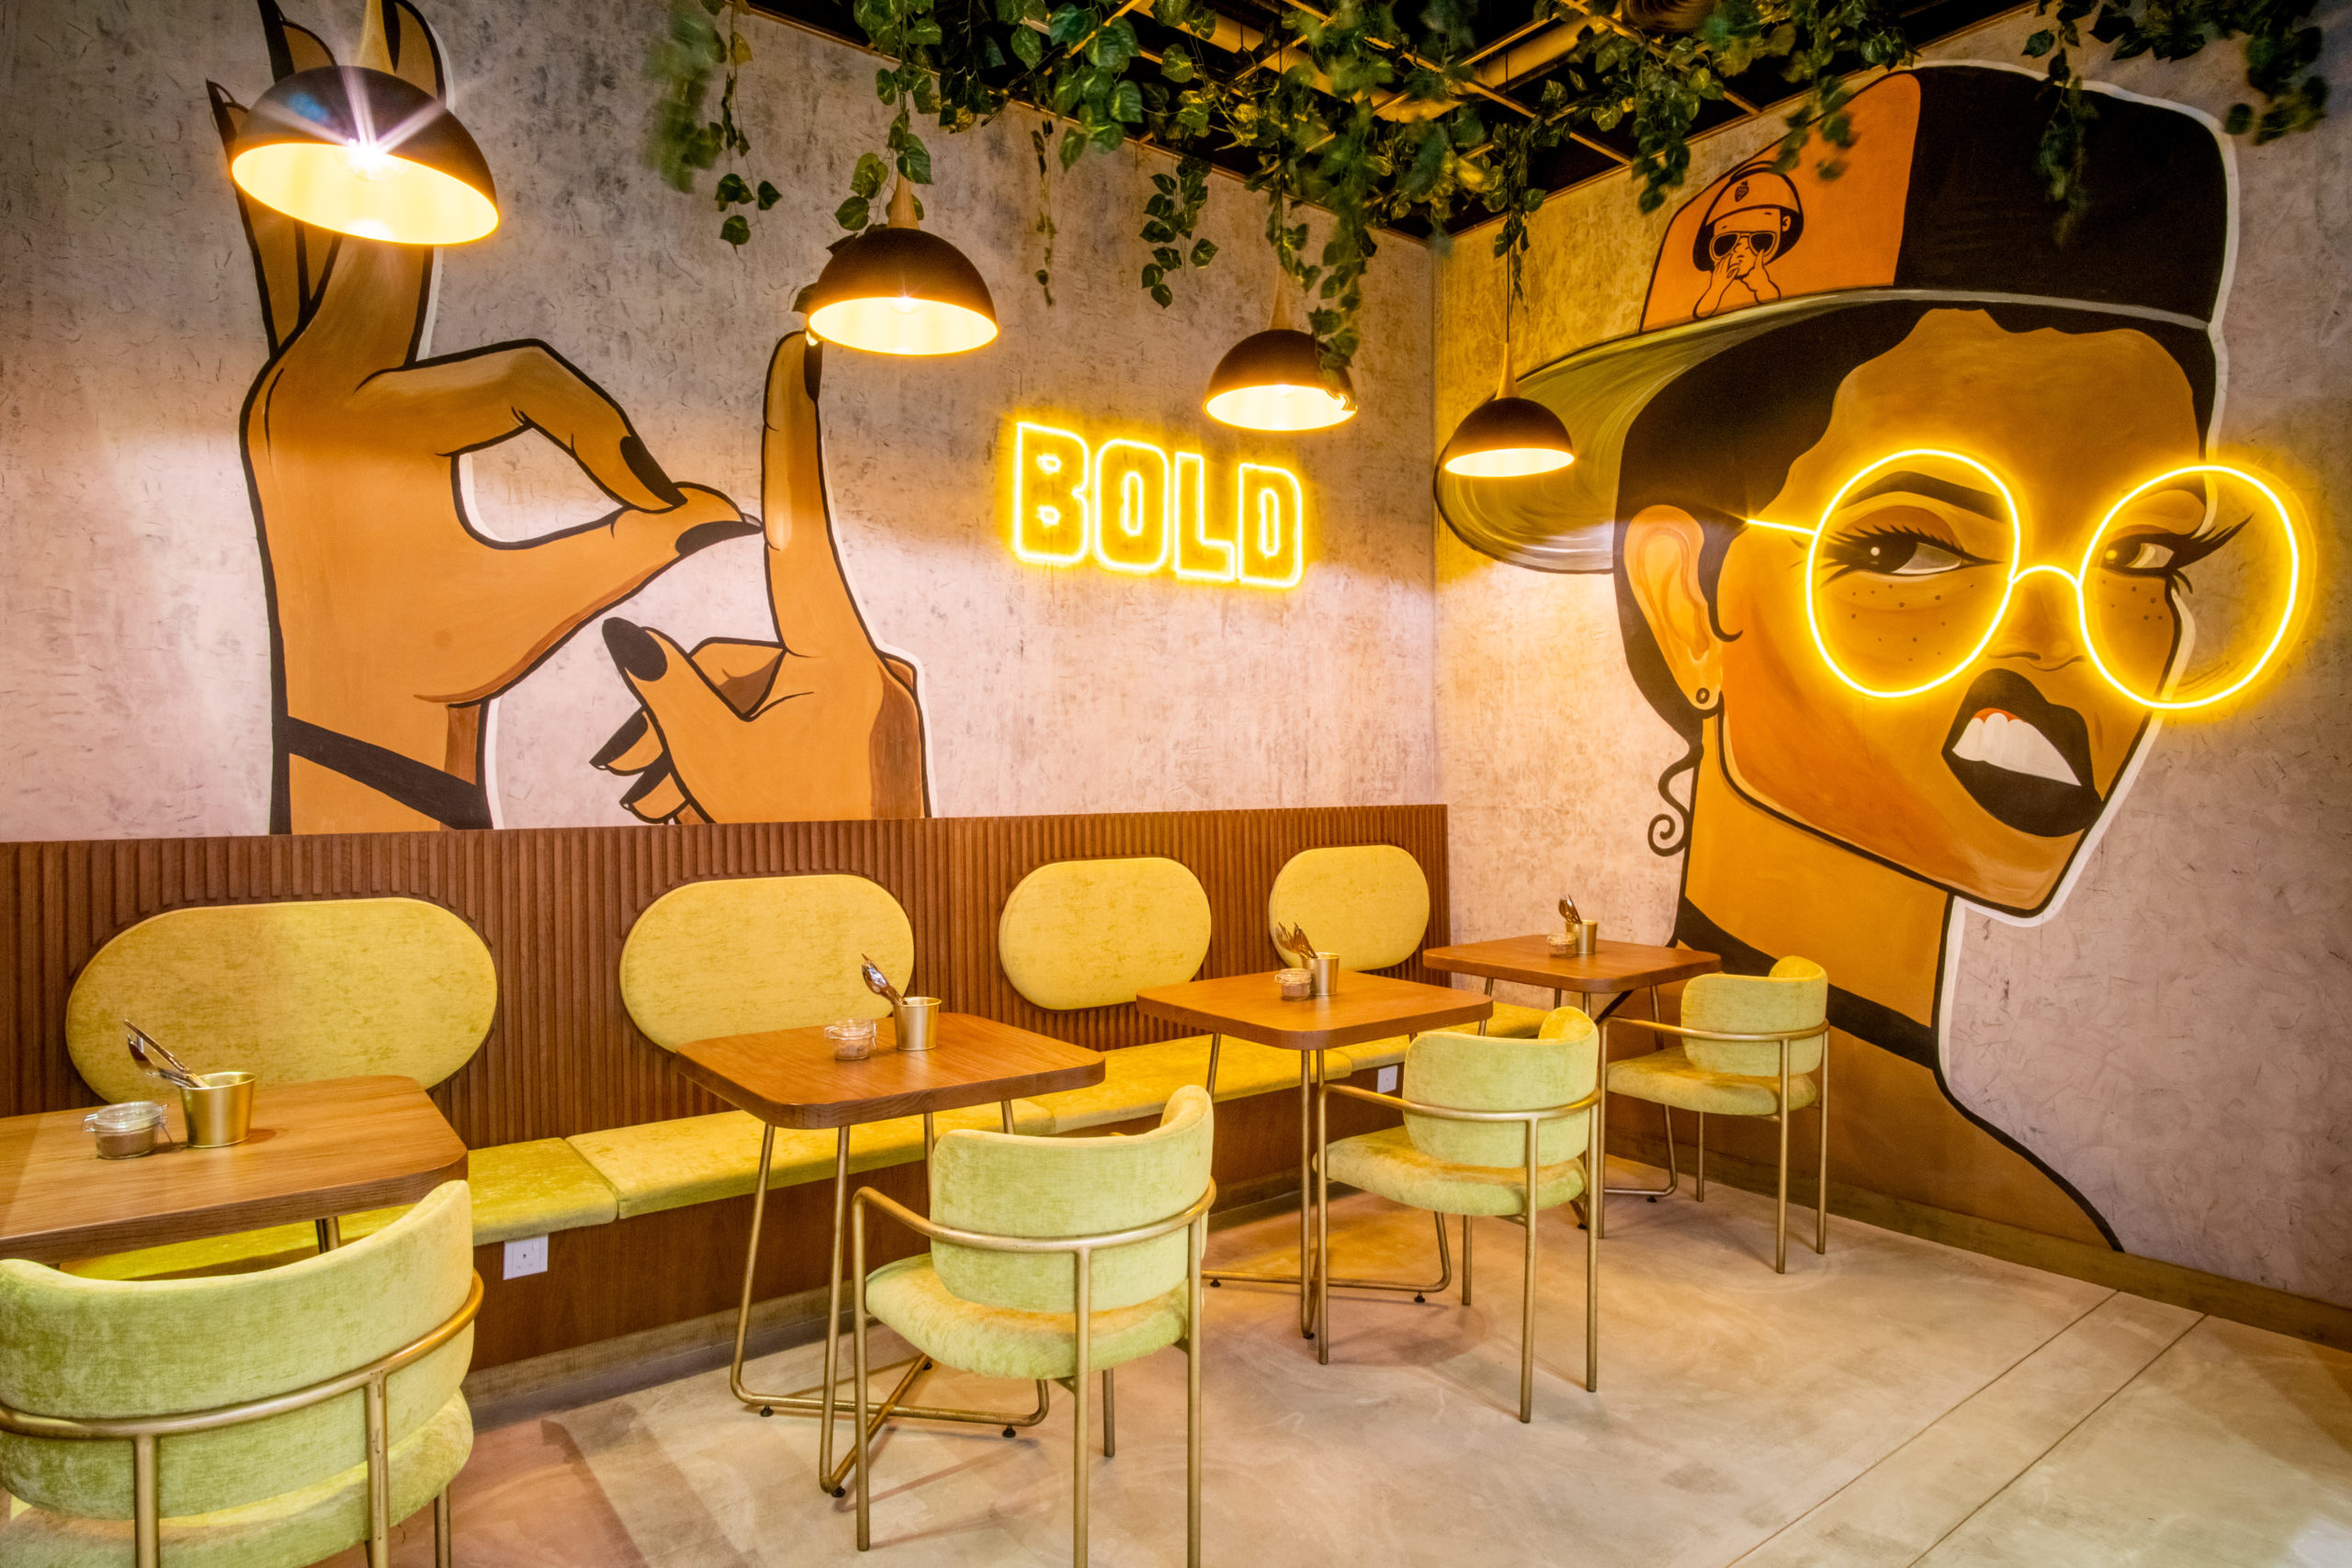 The Bowl One Restaurant By Designsmith Is Full Of Fun And Spunk Design Middle East